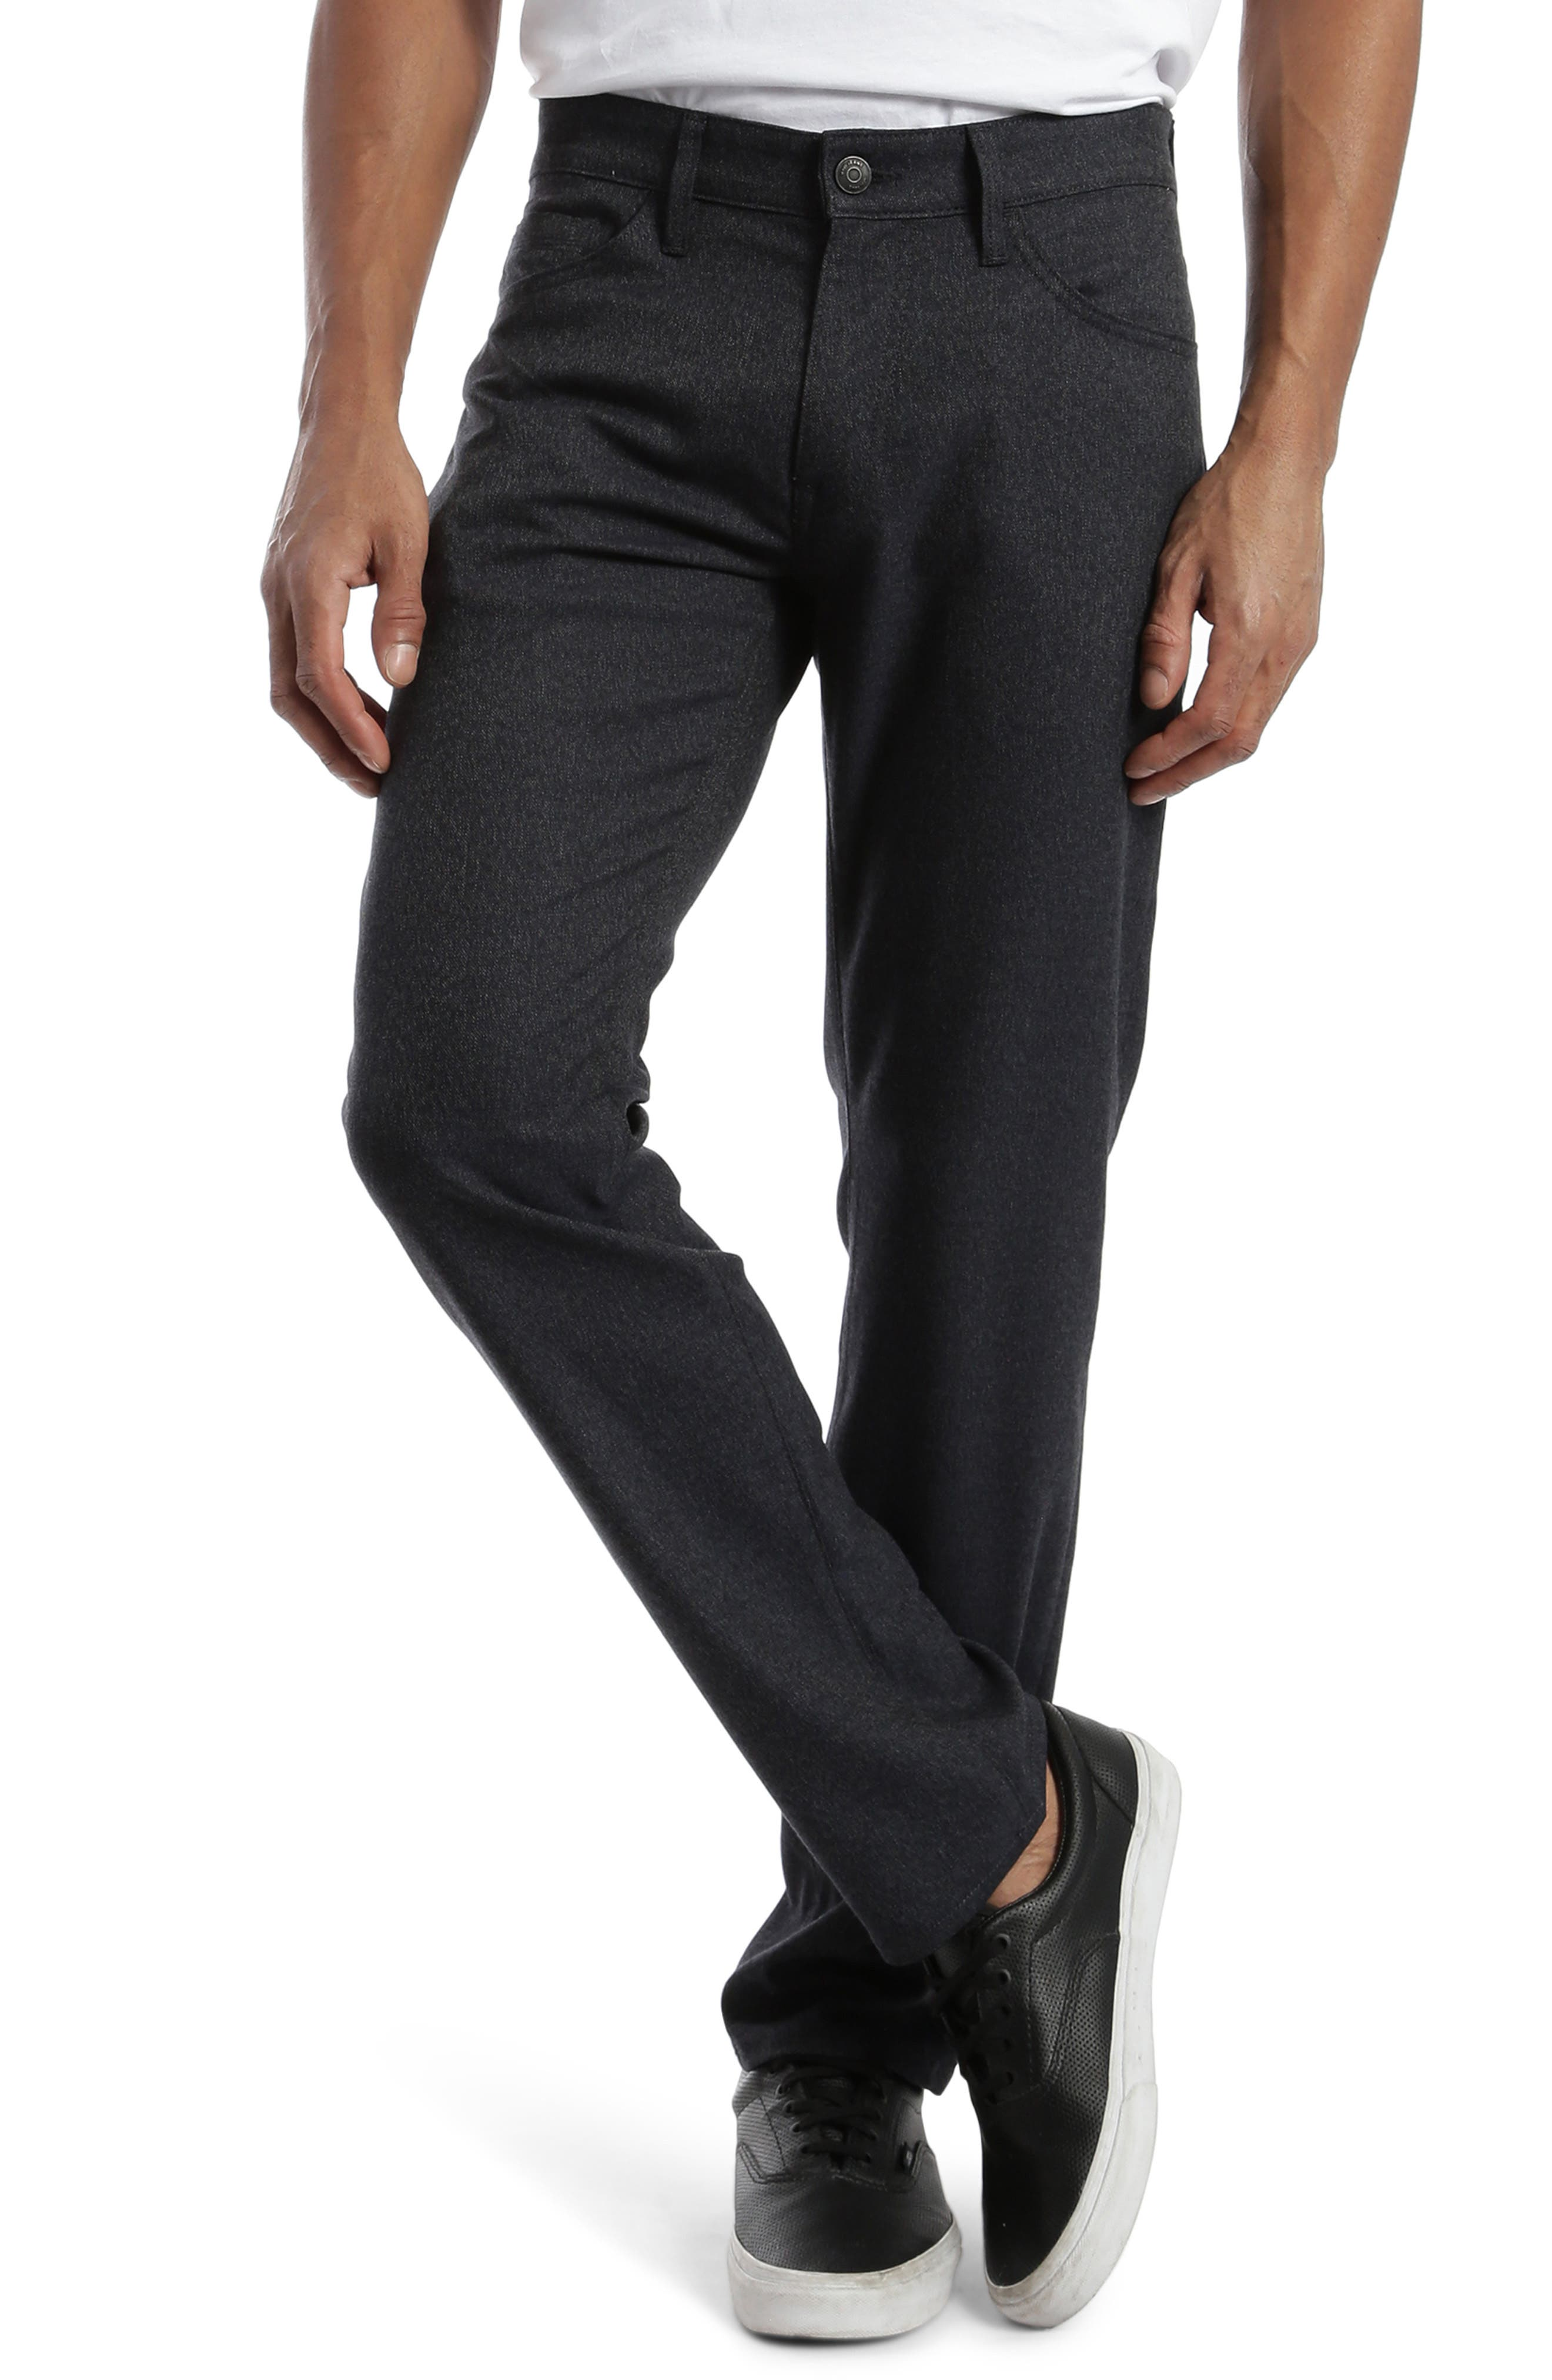 Stretchy tweed gives you a versatile alternative to everyday denim in five-pocket pants styled with a slim fit and a soft, dark finish. Style Name: Mavi Jeans Marcus Slim Straight Leg Five Pocket Pants (Smoke Feather Tweed). Style Number: 5944043. Available in stores.